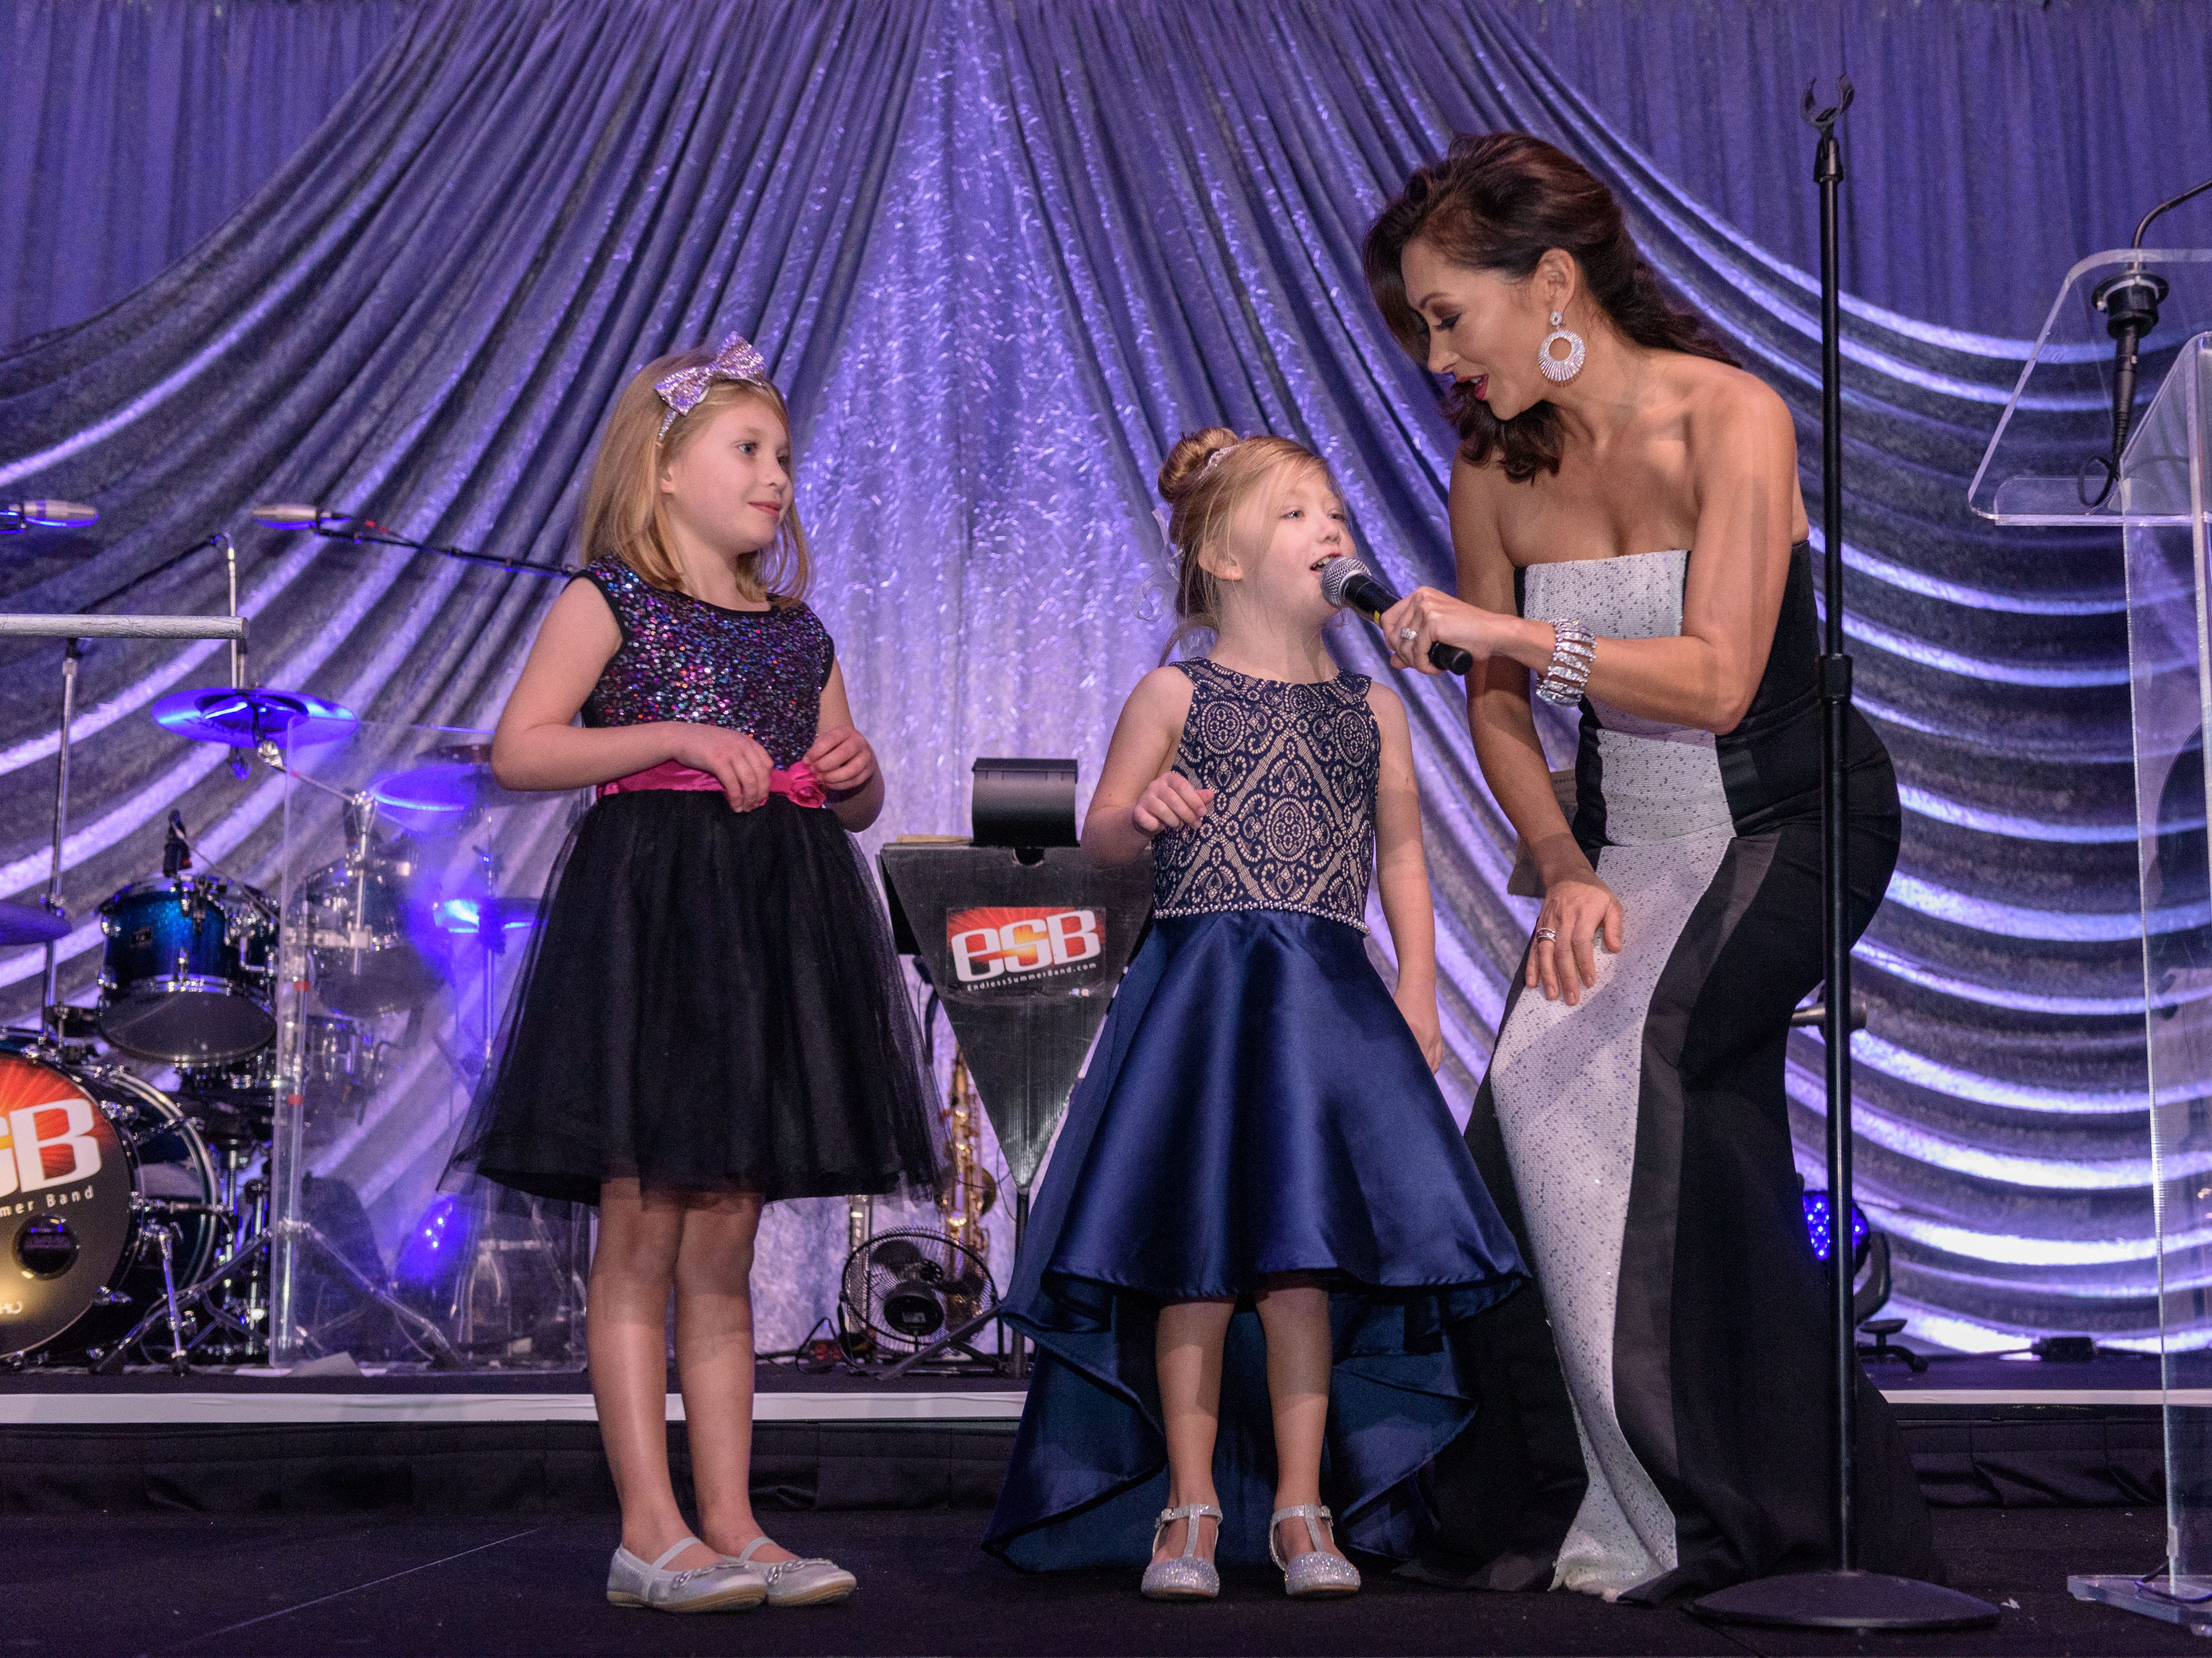 Shannon Cogan of WAVE 3 holds the microphone as Rosie Bowling and Lilly Brown tells everyone to get their raffle tickets in before the drawing at the Snow Ball Gala at the Omni Hotel, a benefit for the Jennifer Lawrence Cardiac Intensive Care Unit (CICU) at Norton ChildrenÕs Hospital. Nov. 17, 2018